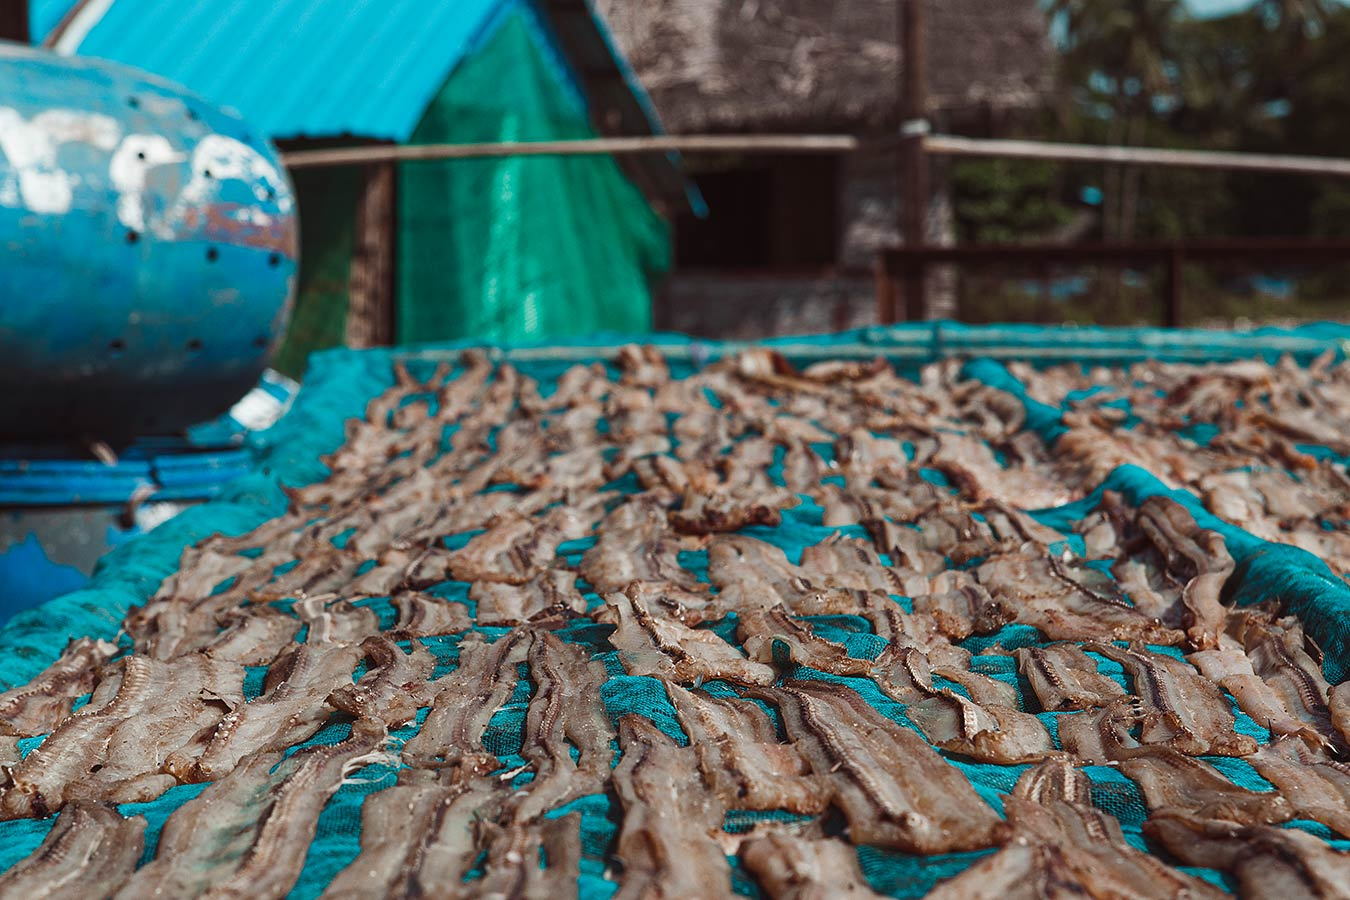 Fish is salted and cured in the hot sun - fishign village in Southeast Asia